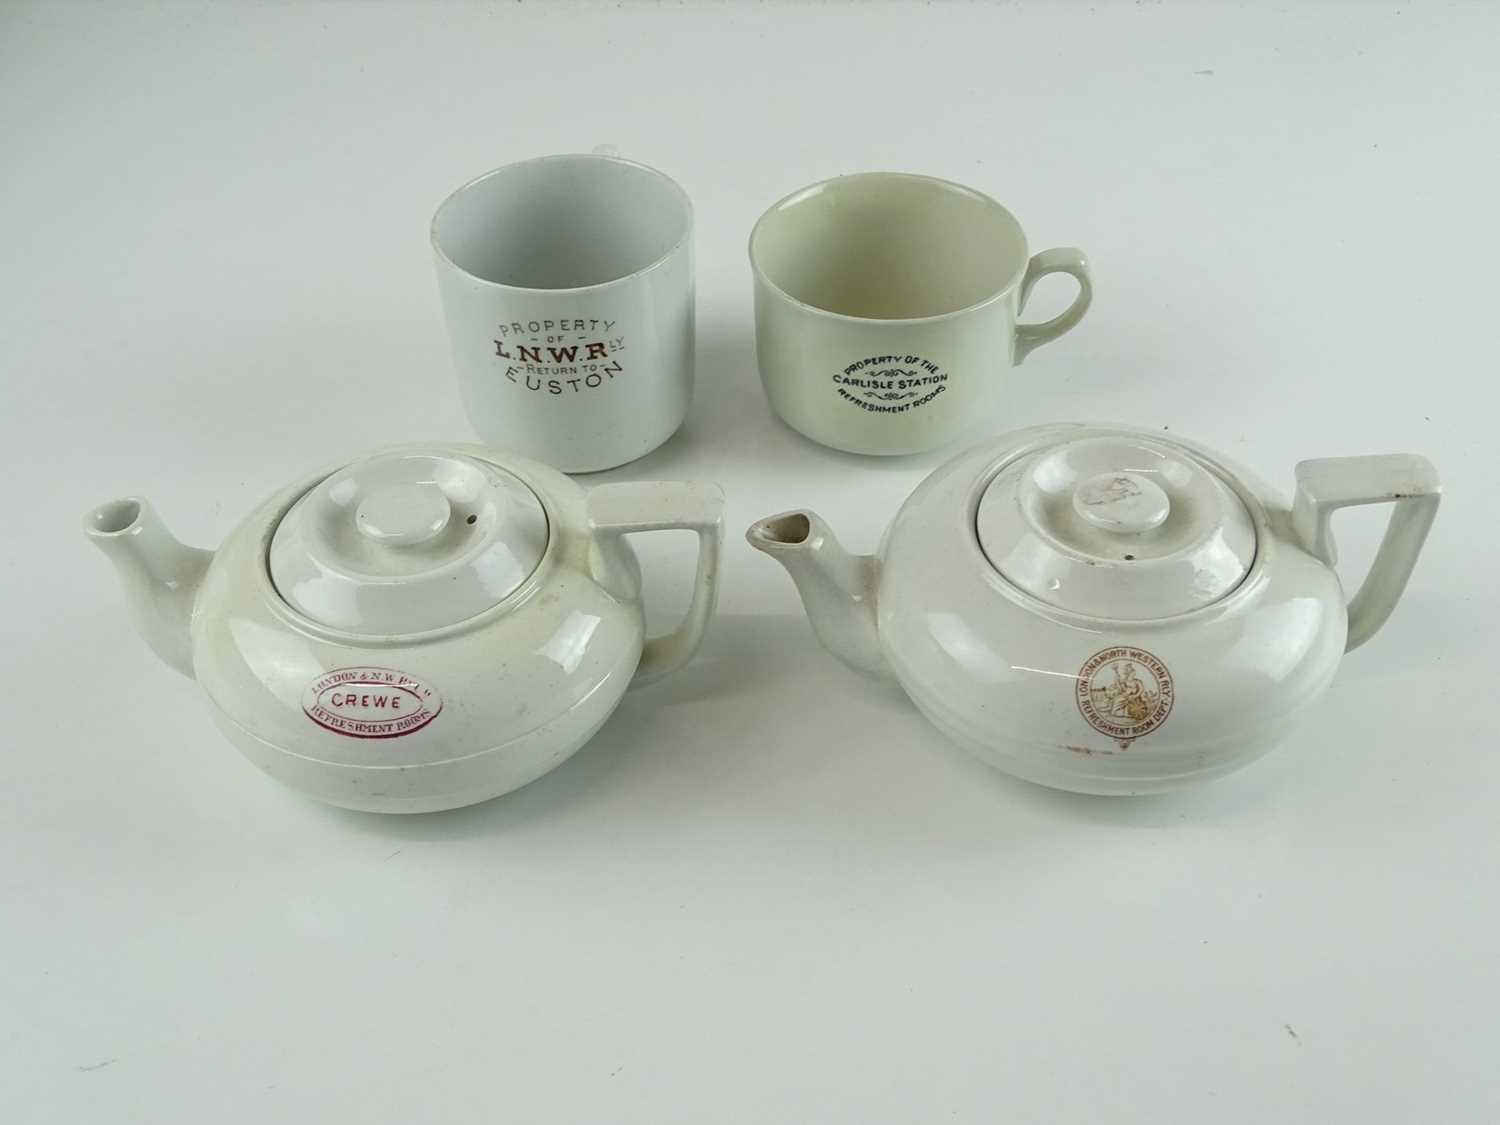 A group of early railway crockery items comprising 2 x L&NWR teapots (one marked Crewe), an LNWR